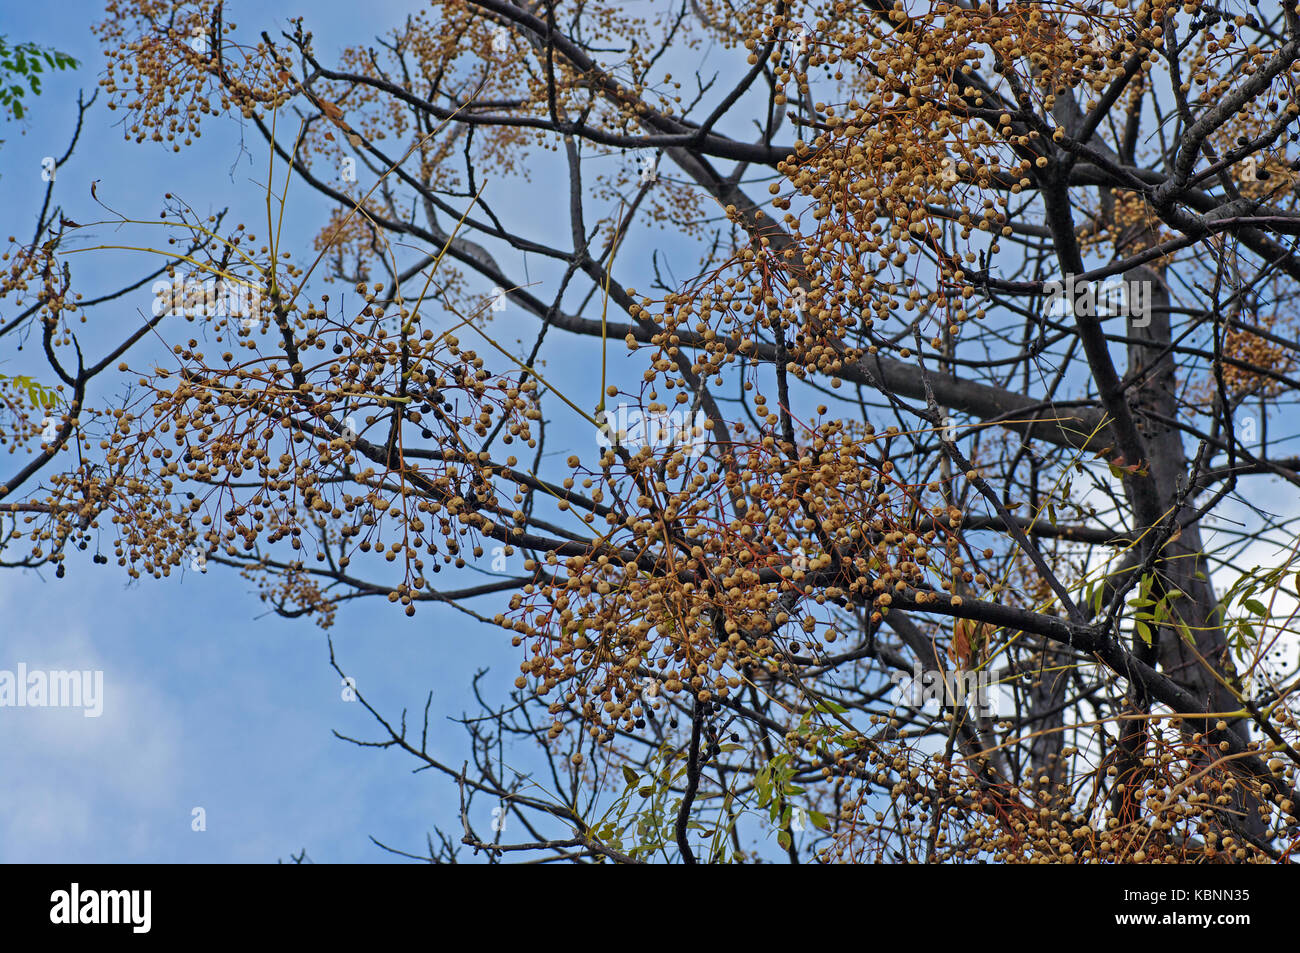 the tree Melia azederach, the Chinaberry tree or Bead-tree, from the family Meliaceae - Stock Image